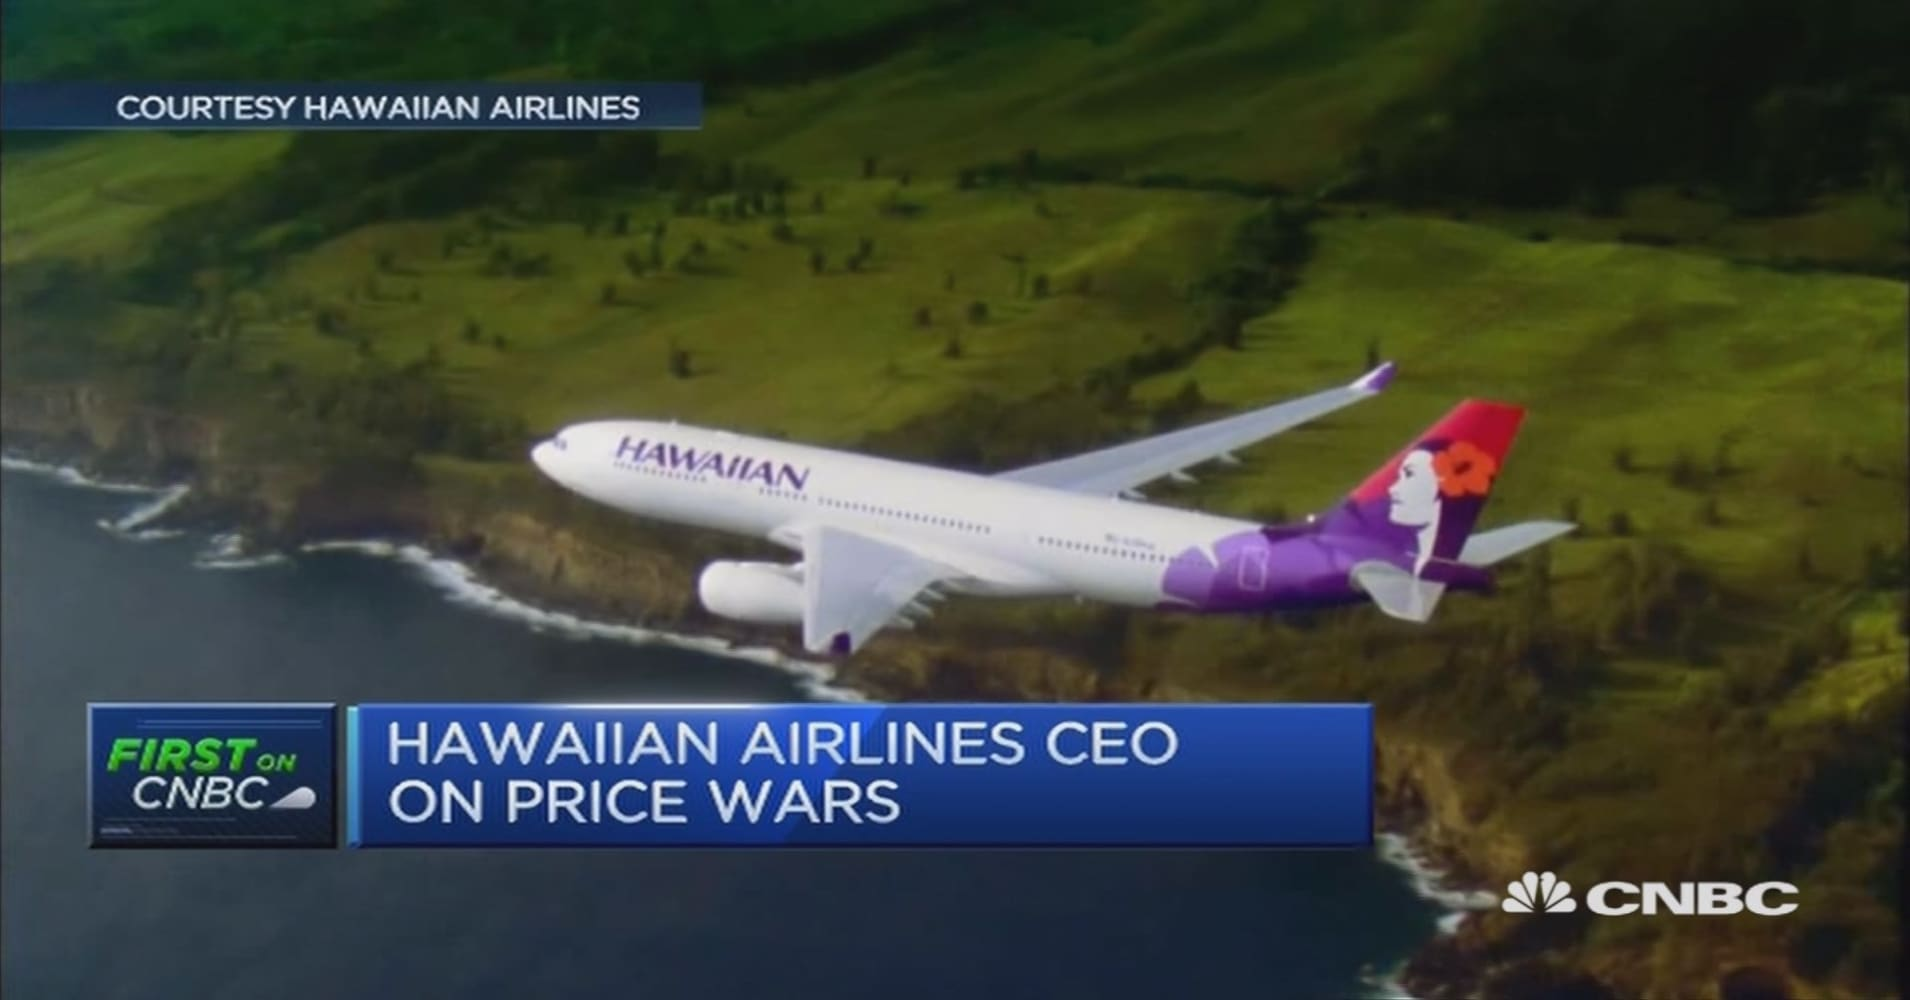 We're Going To Make Hawaii More Accessible To Sea: Hawaiian Airlines Ceo